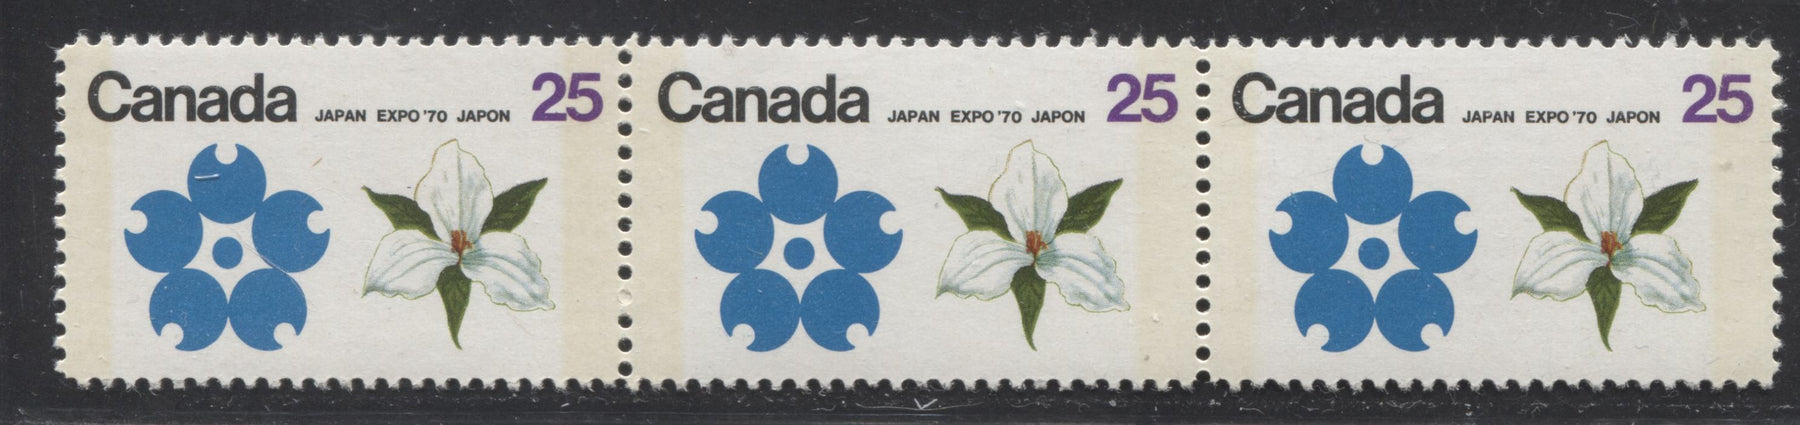 Canada #511ii 25c Blue Emblems, 1970 Expo '70 Issue, VFNH Winnipeg Tagged Strip of 3